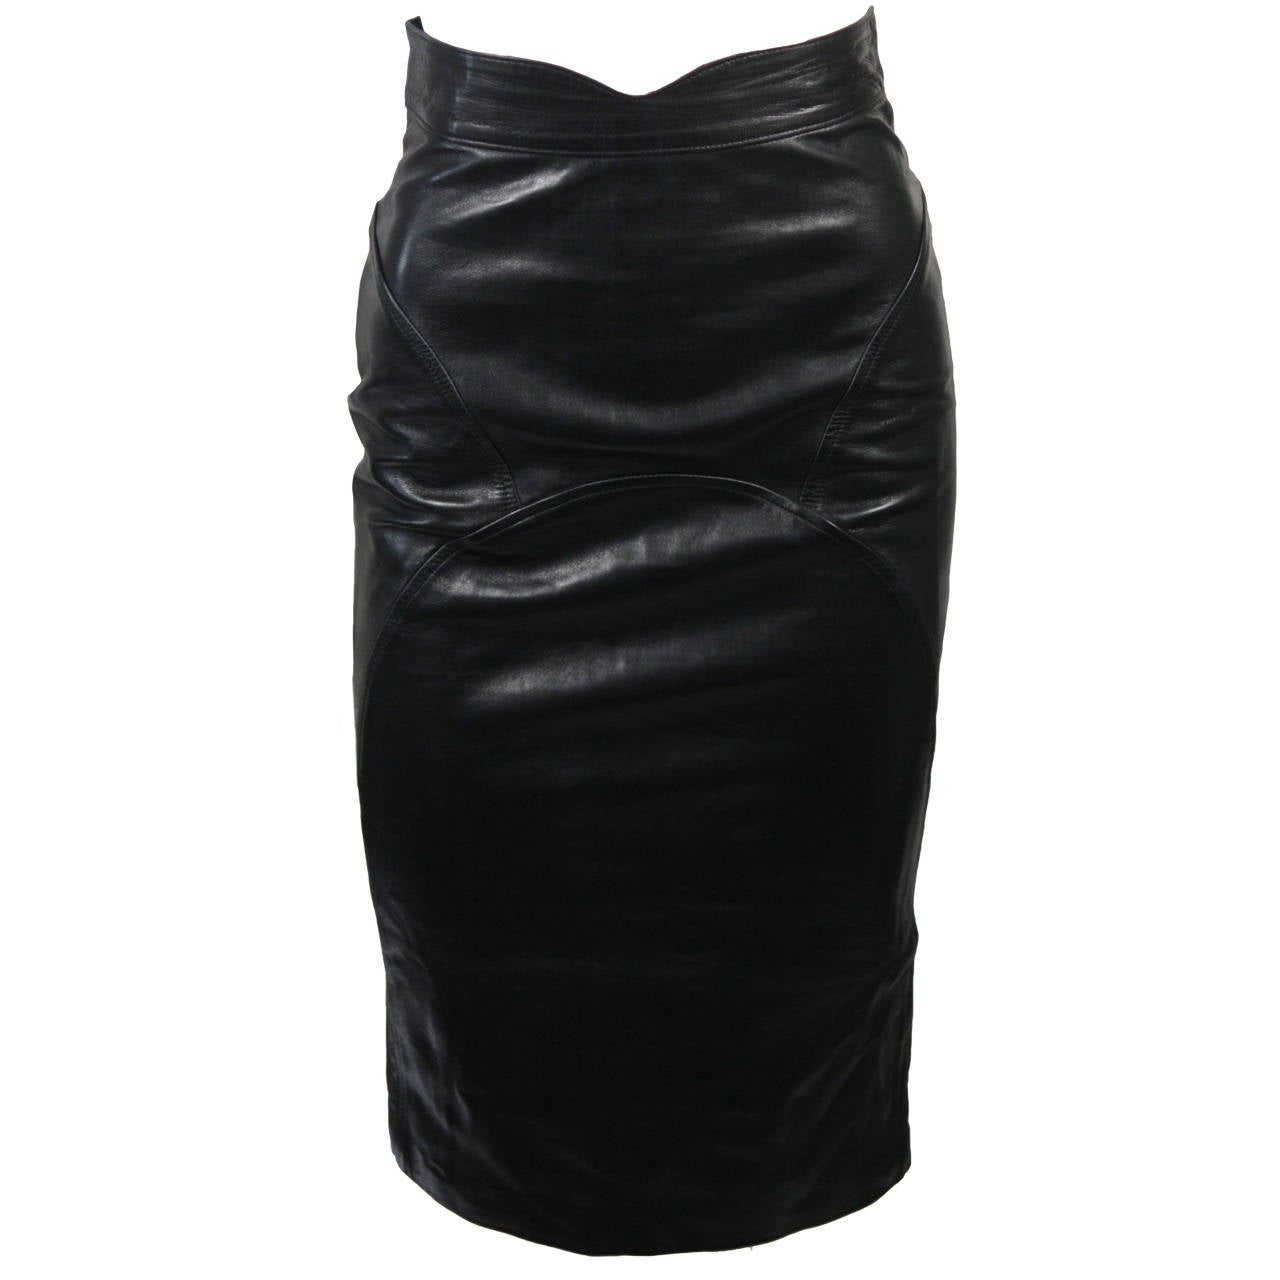 Jean Claude Jitrois Black Leather Skirt Size Extra Small 1